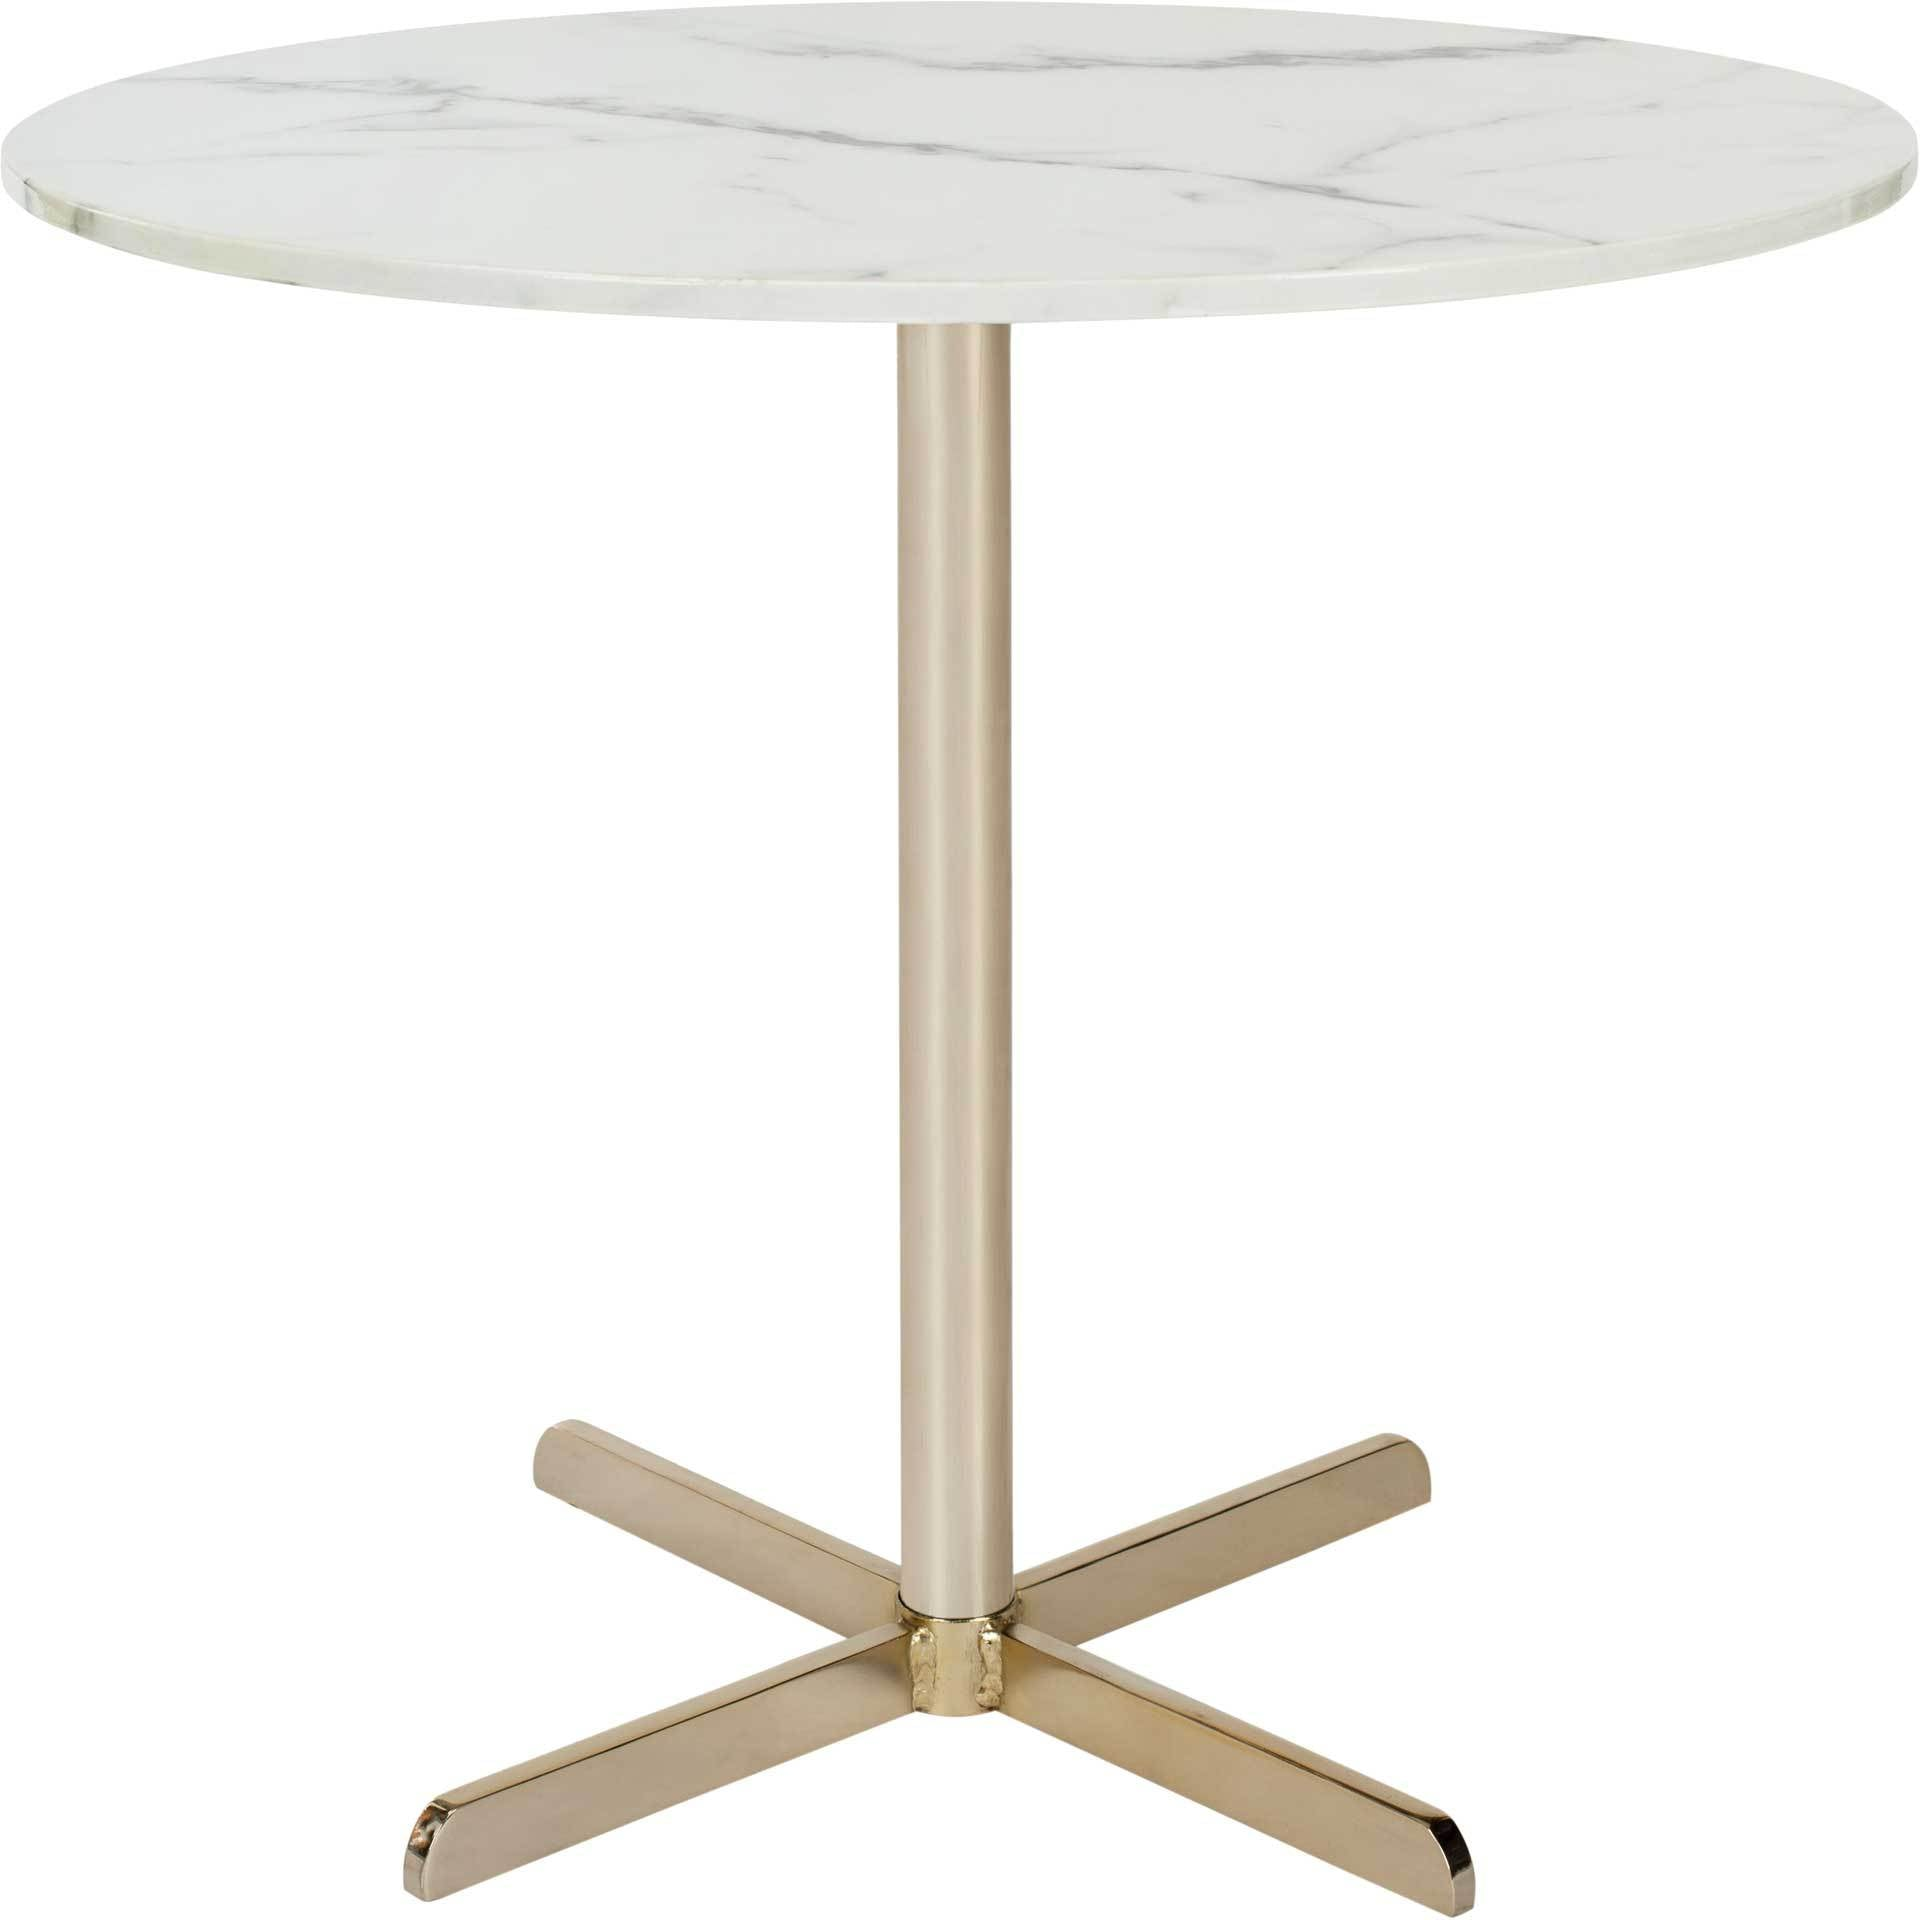 William Round Side Table White Marble/Brass